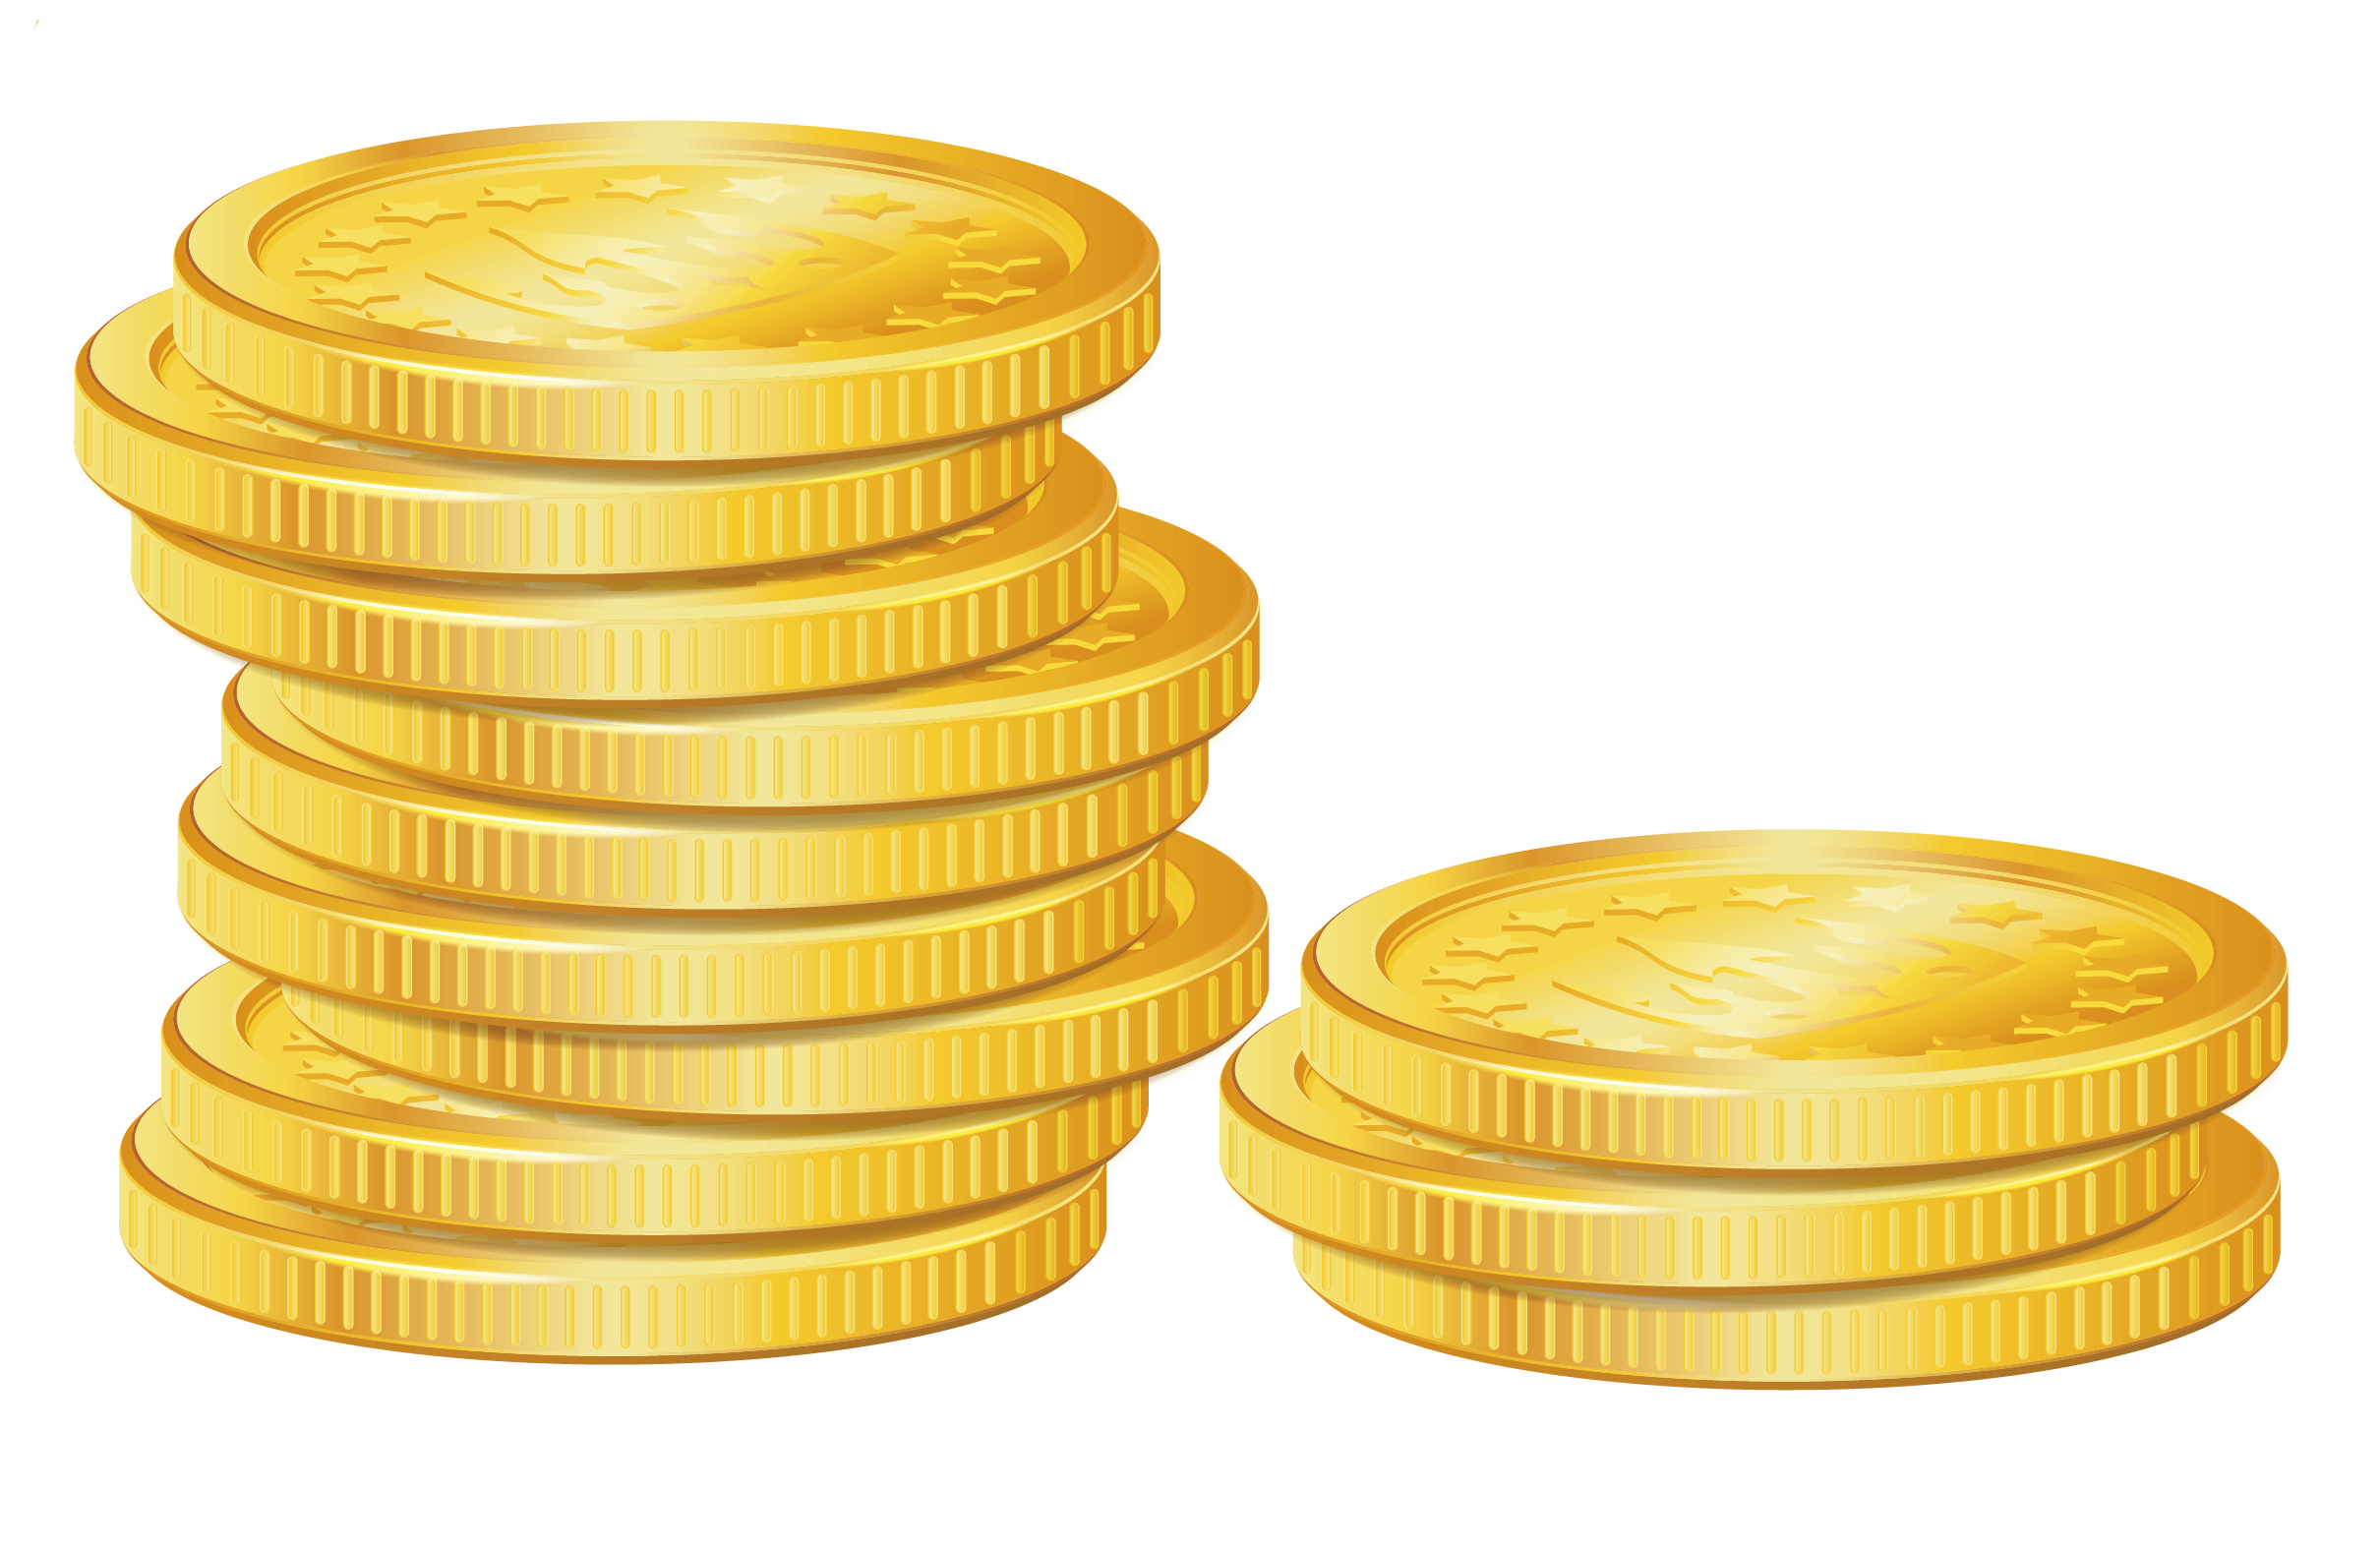 Coins Png Hd PNG Image - Coins PNG HD